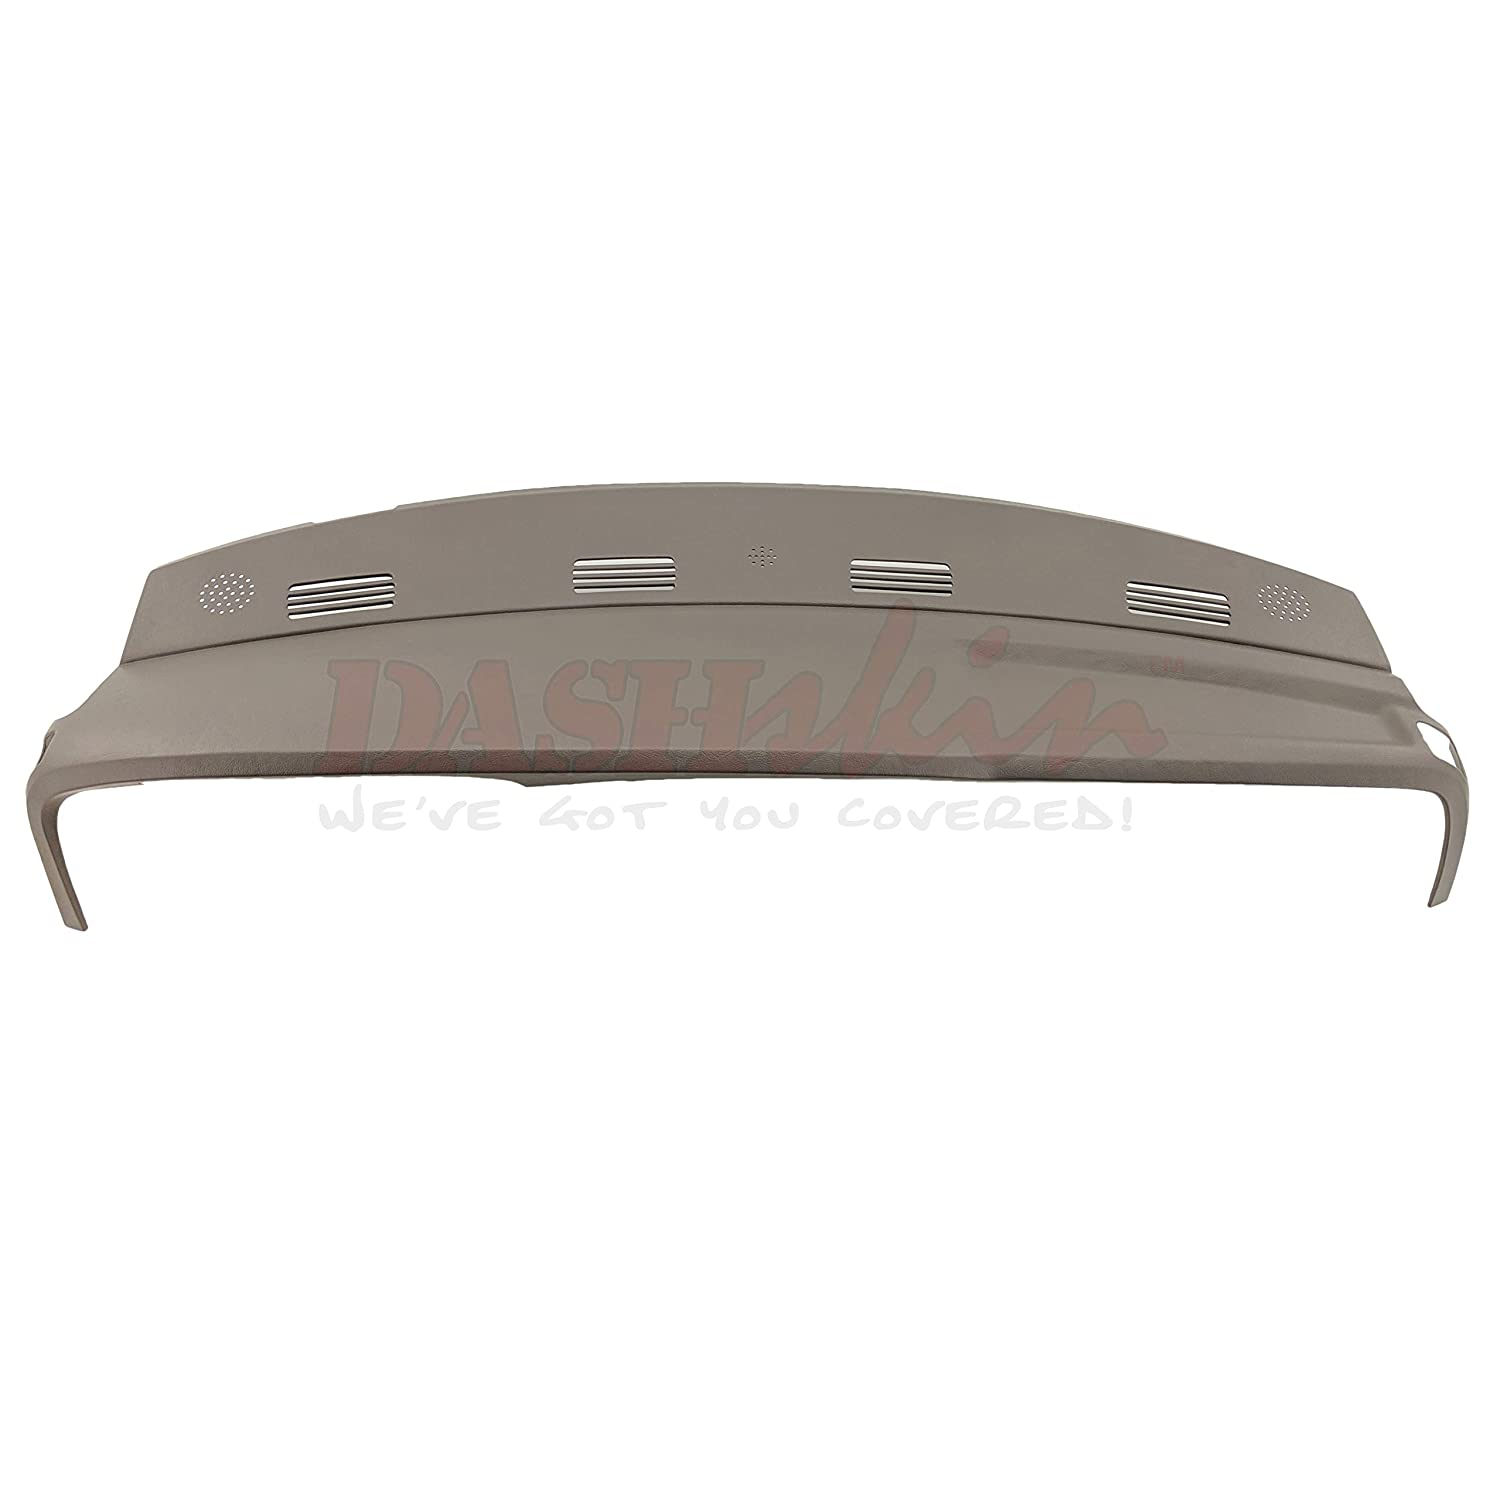 DashSkin Molded Dash Cover Compatible with 02-05 Dodge Ram in Taupe